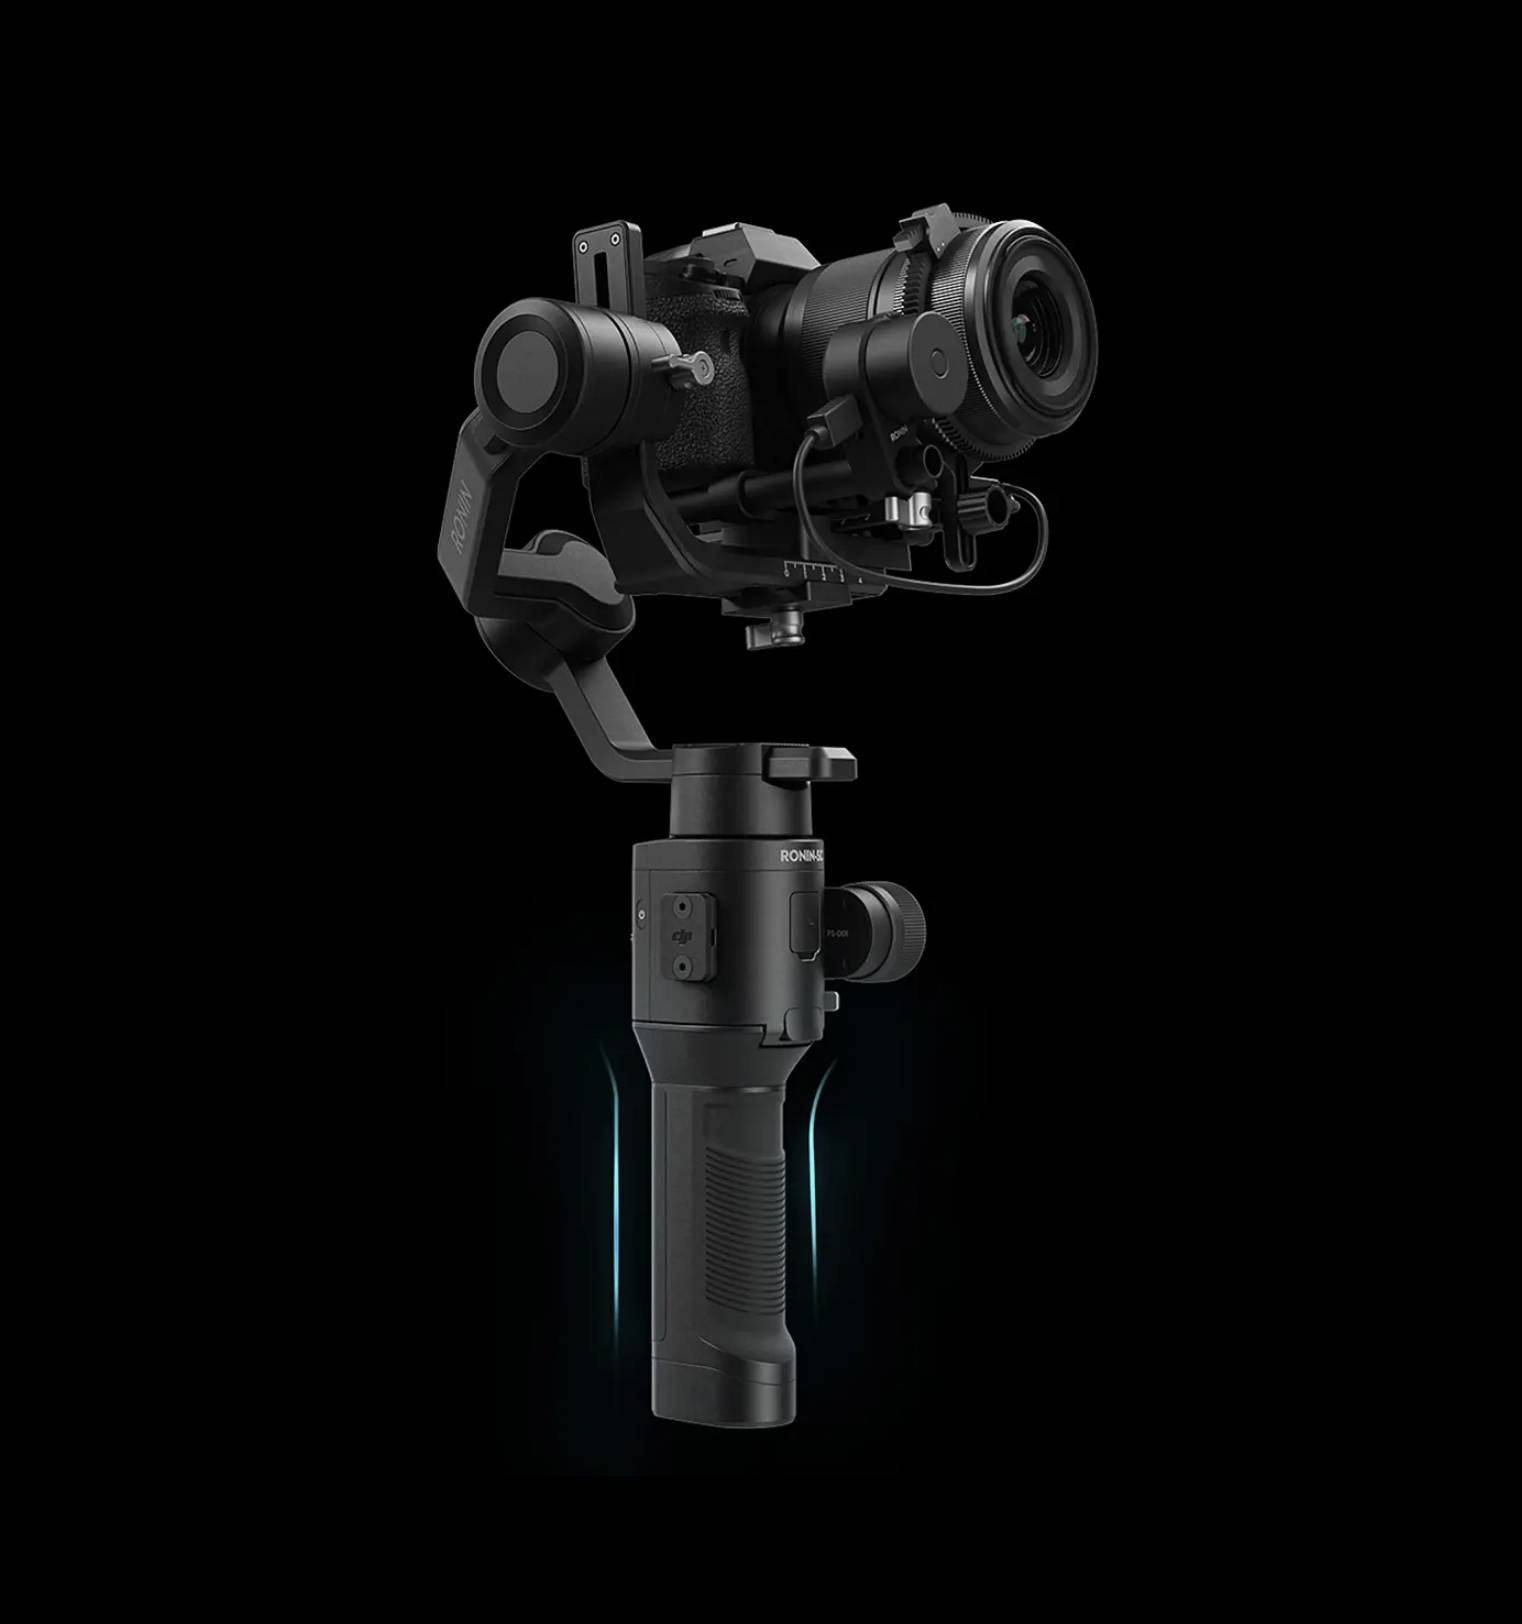 DJI Ronin-SC buttons and triggers